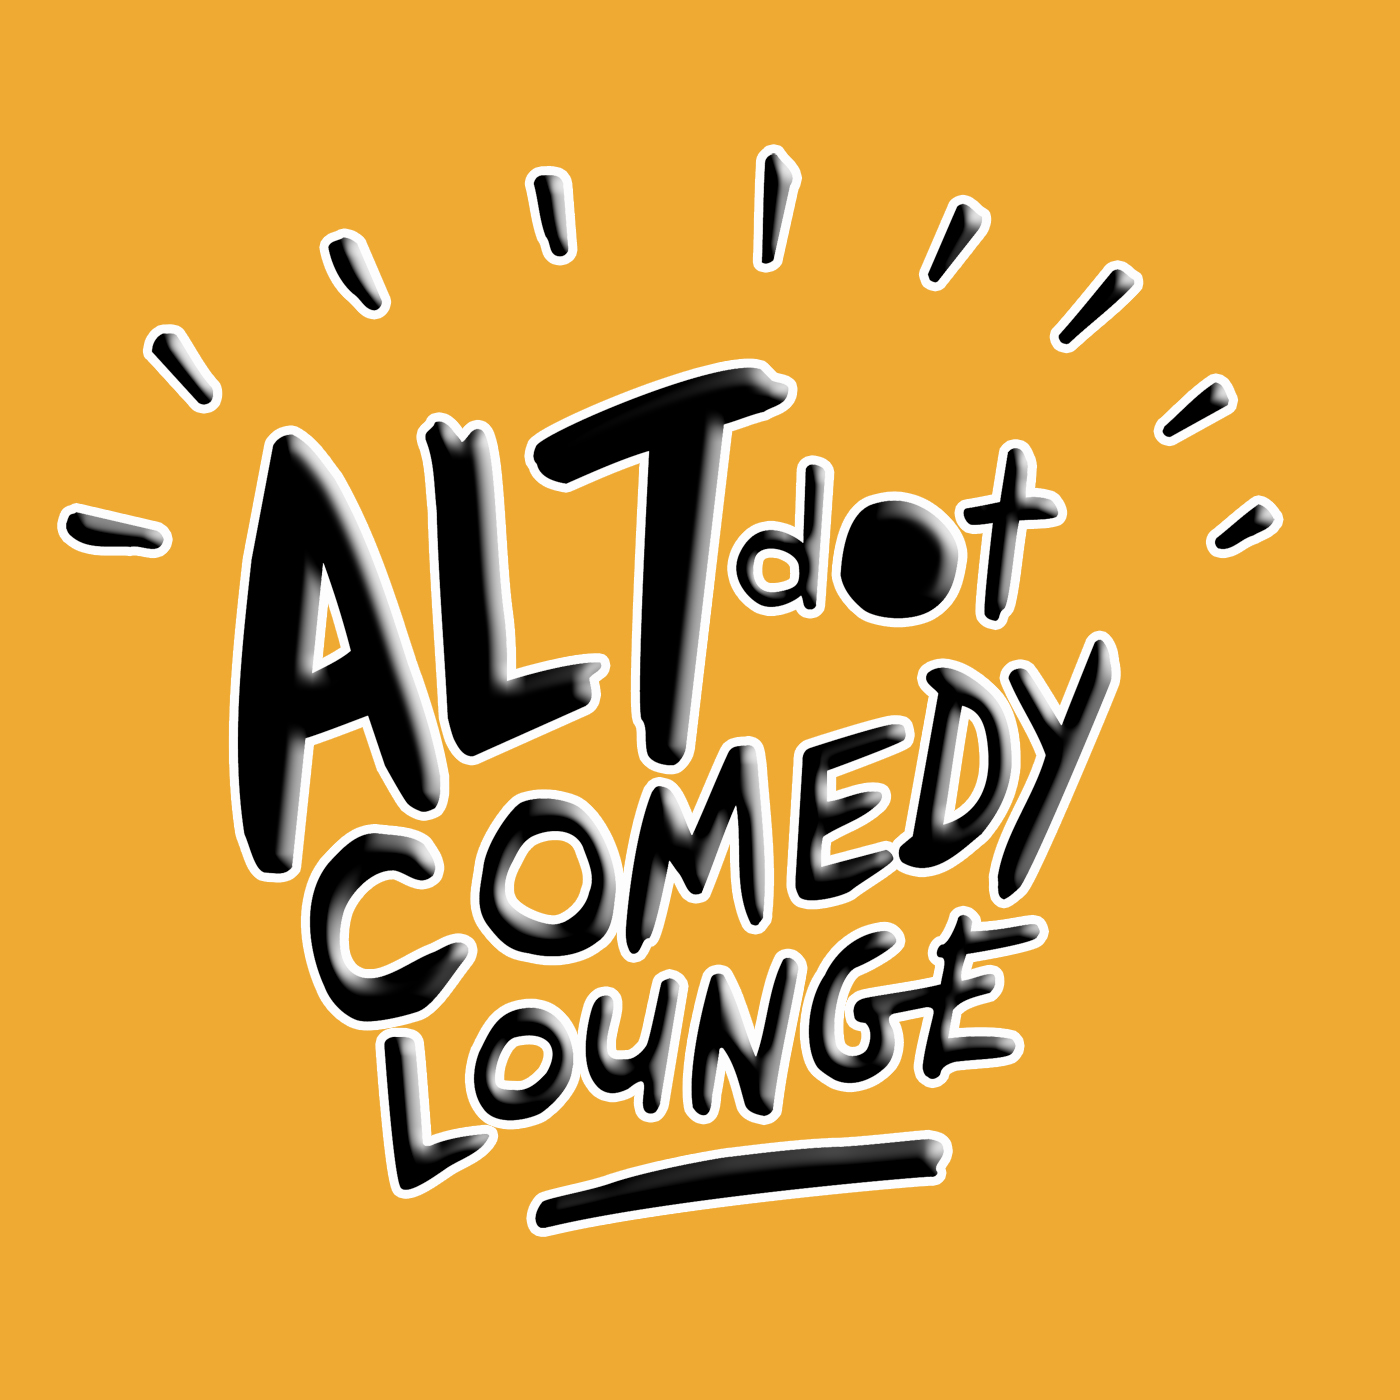 The Altdot Comedy Lounge